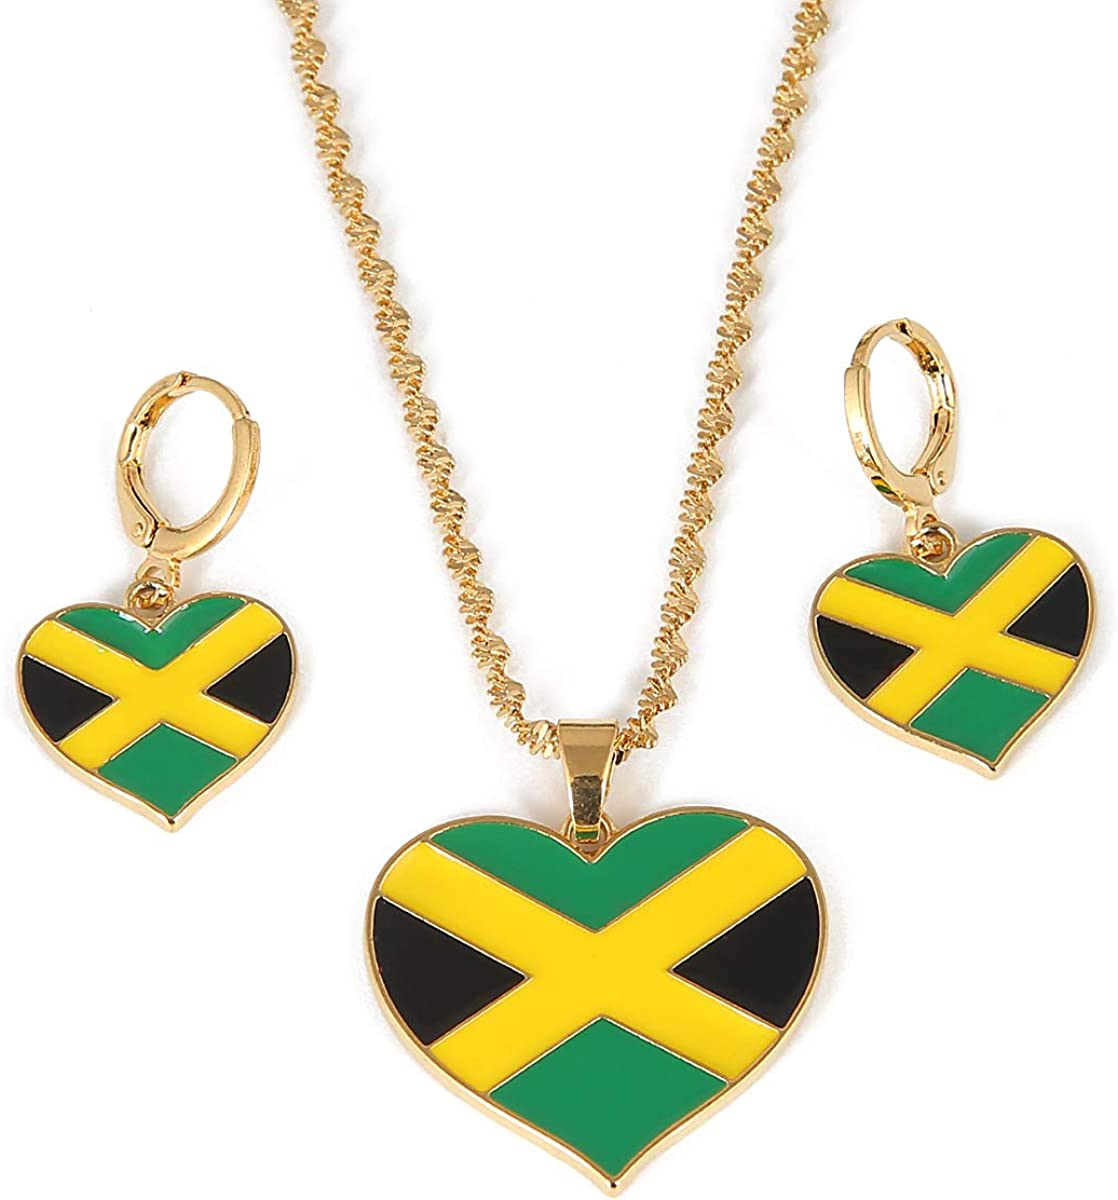 Jamaica Heart Map National Flag Pendant Necklaces Earrings Jewelry Jamaican Gifts